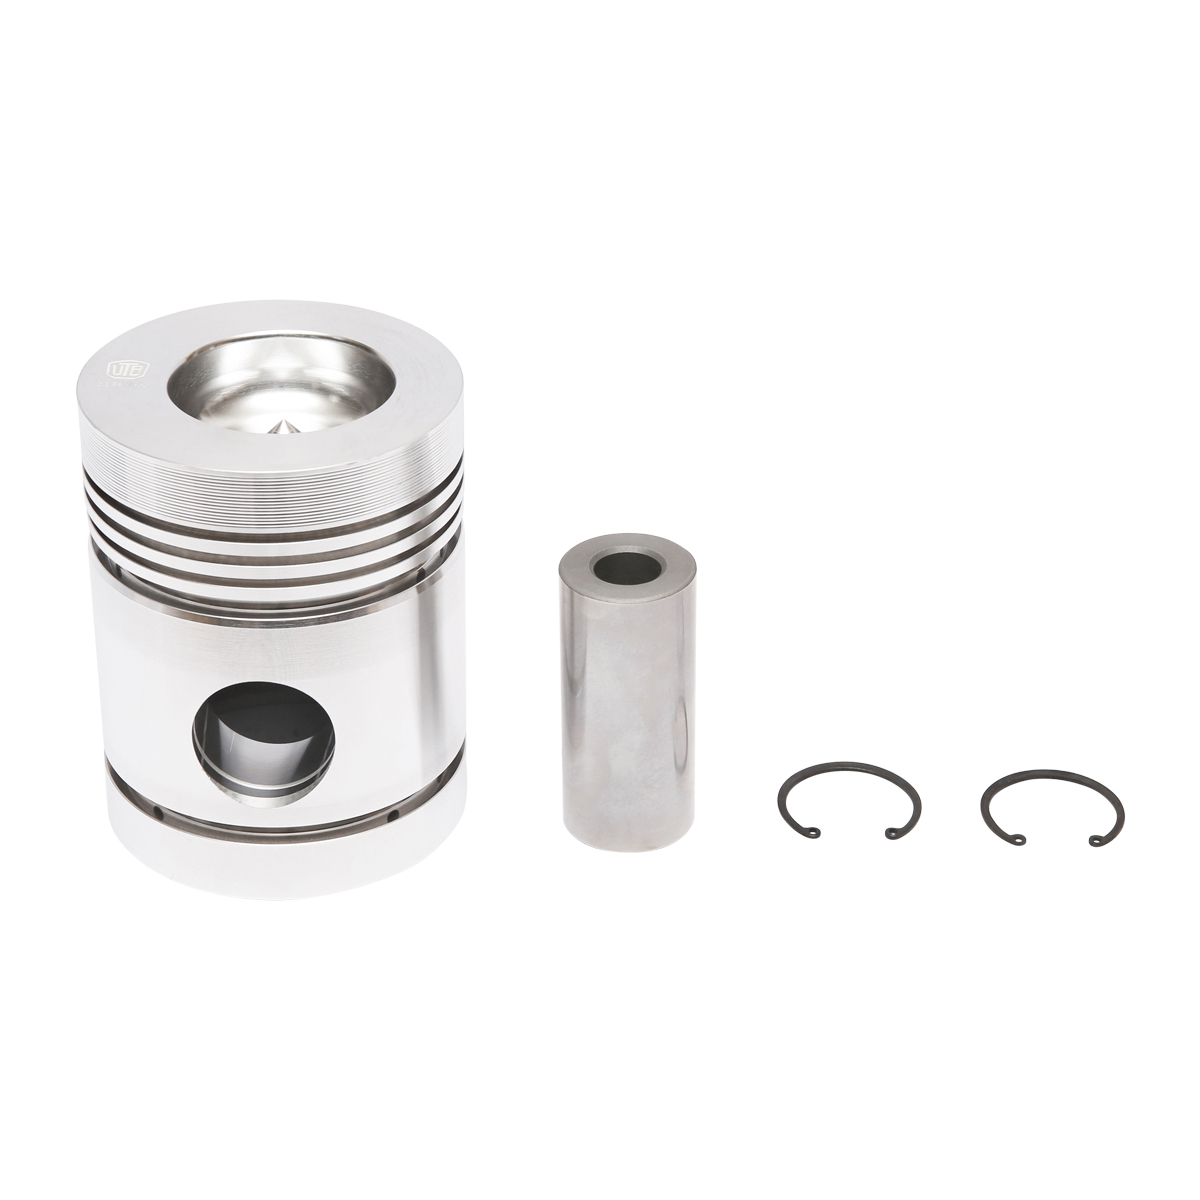 Piston echipat U-650